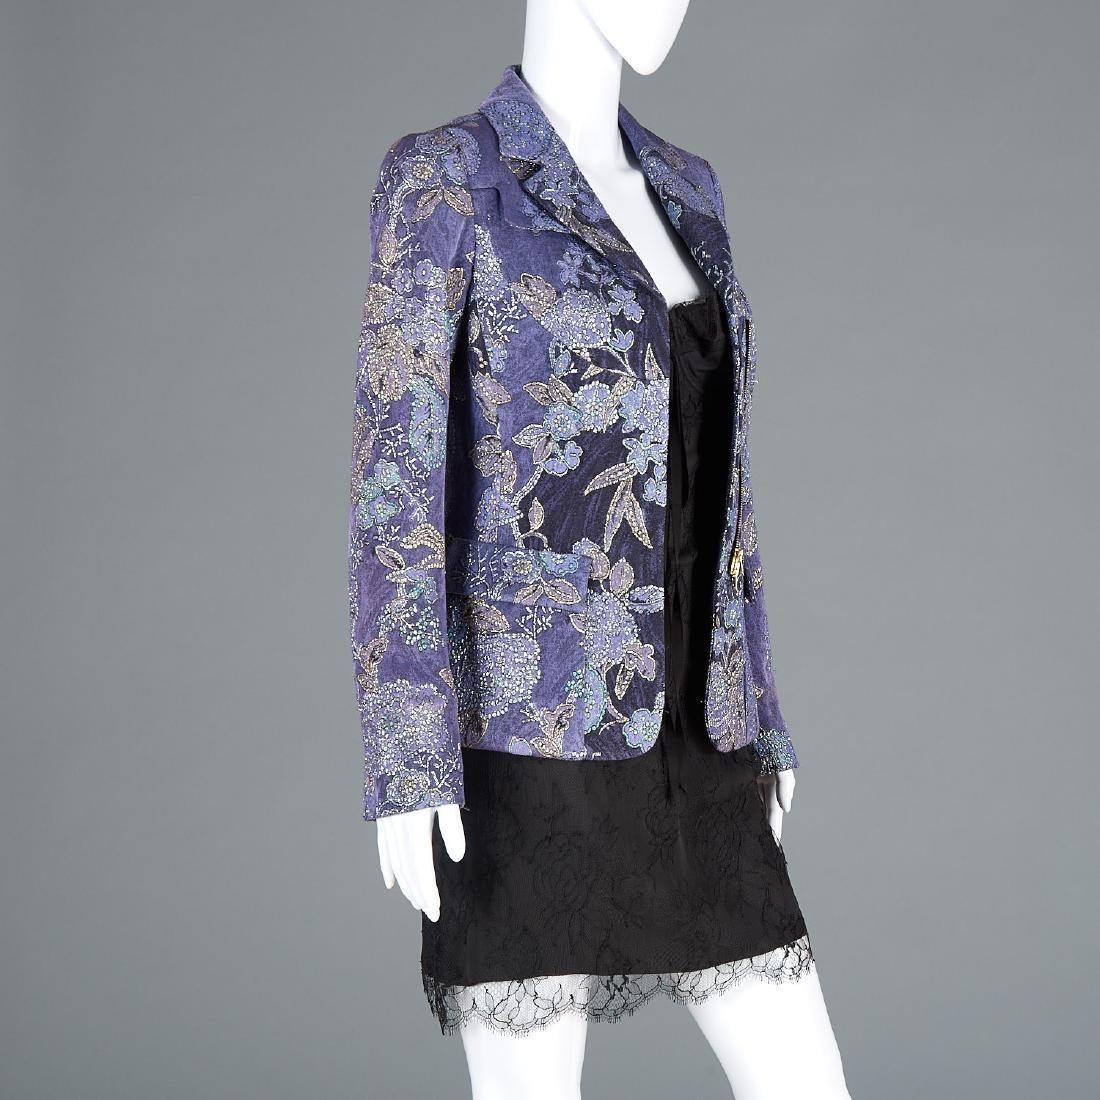 Tuleh brocade jacket and lace cocktail dress